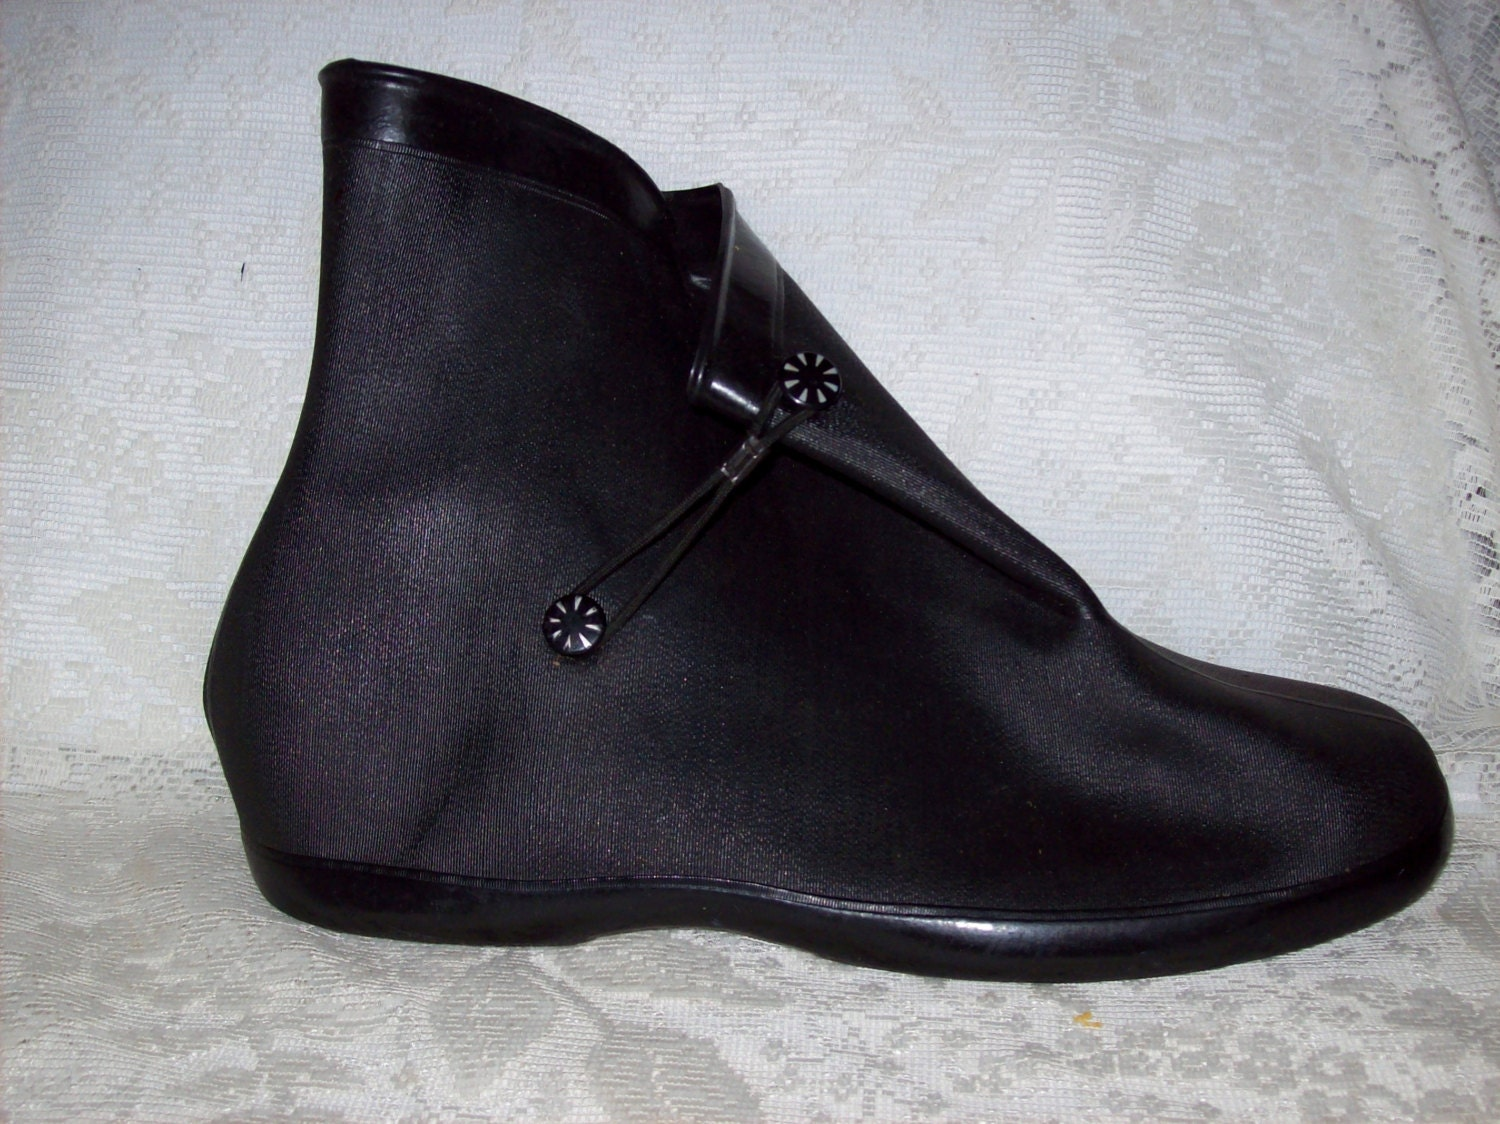 Vintage Ladies Rubber Galoshes Overshoes Size 8 Only 10 USD